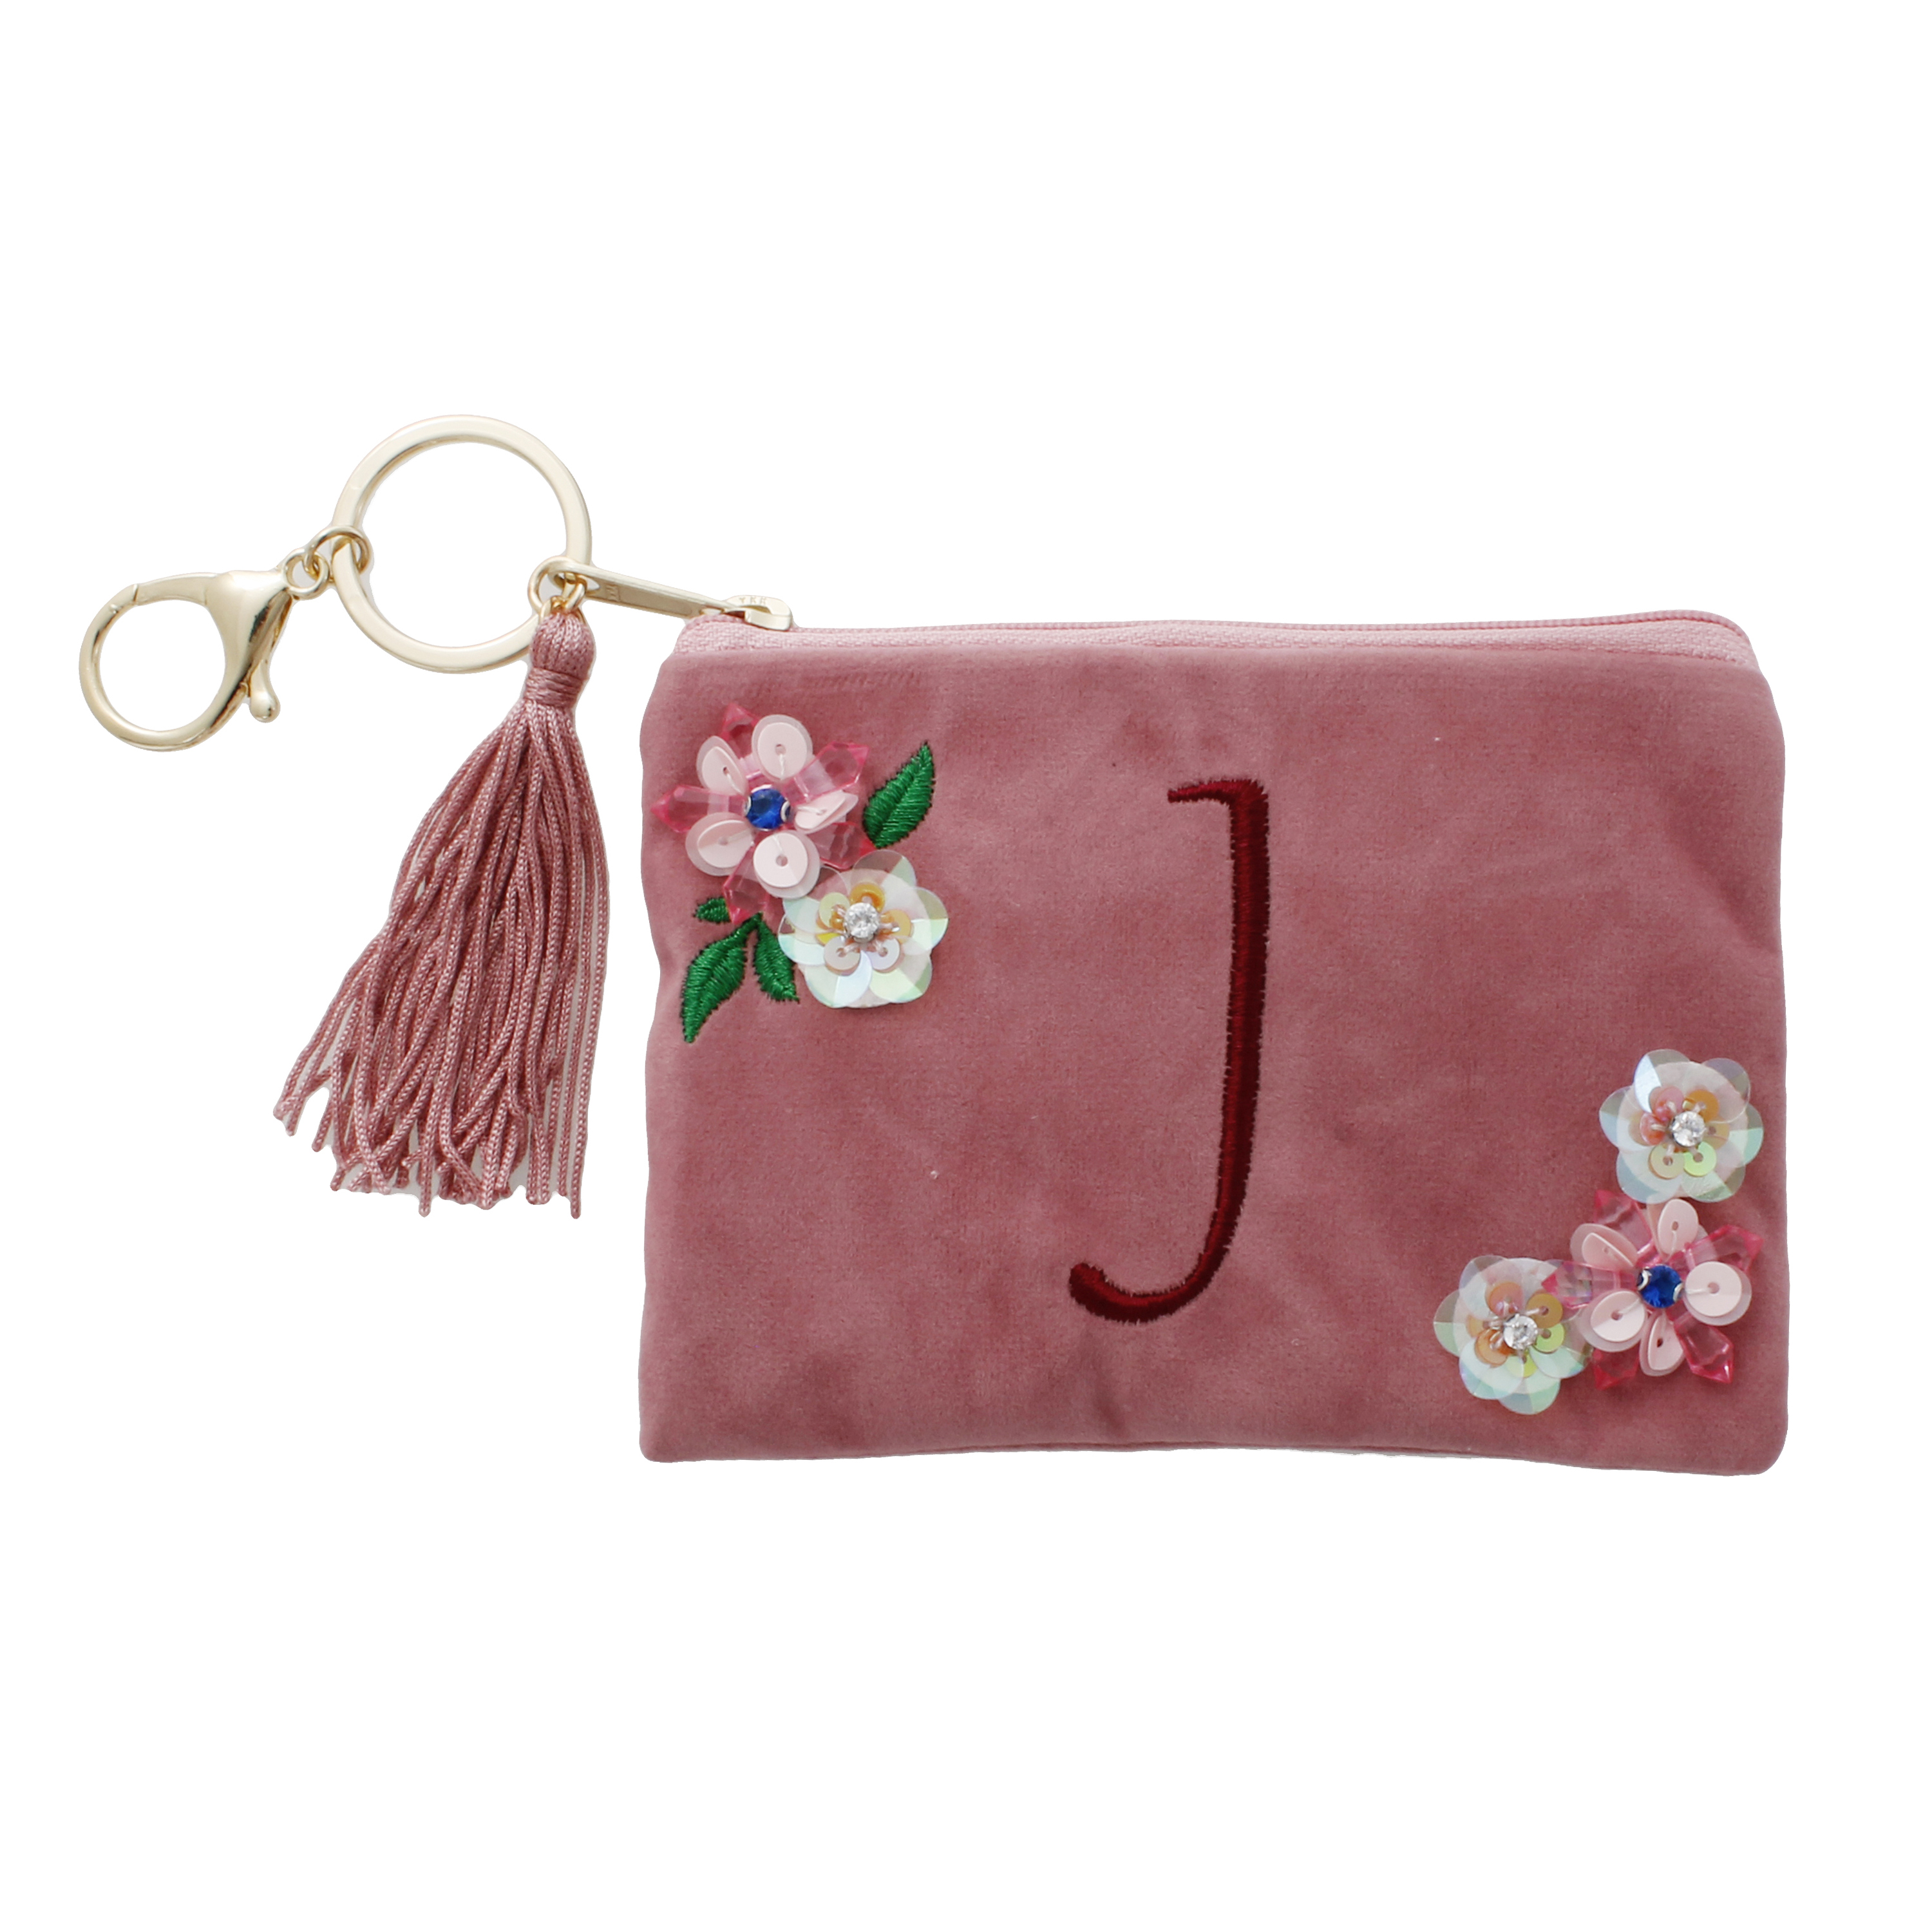 Time And Tru J Initial Pouch Key Ring